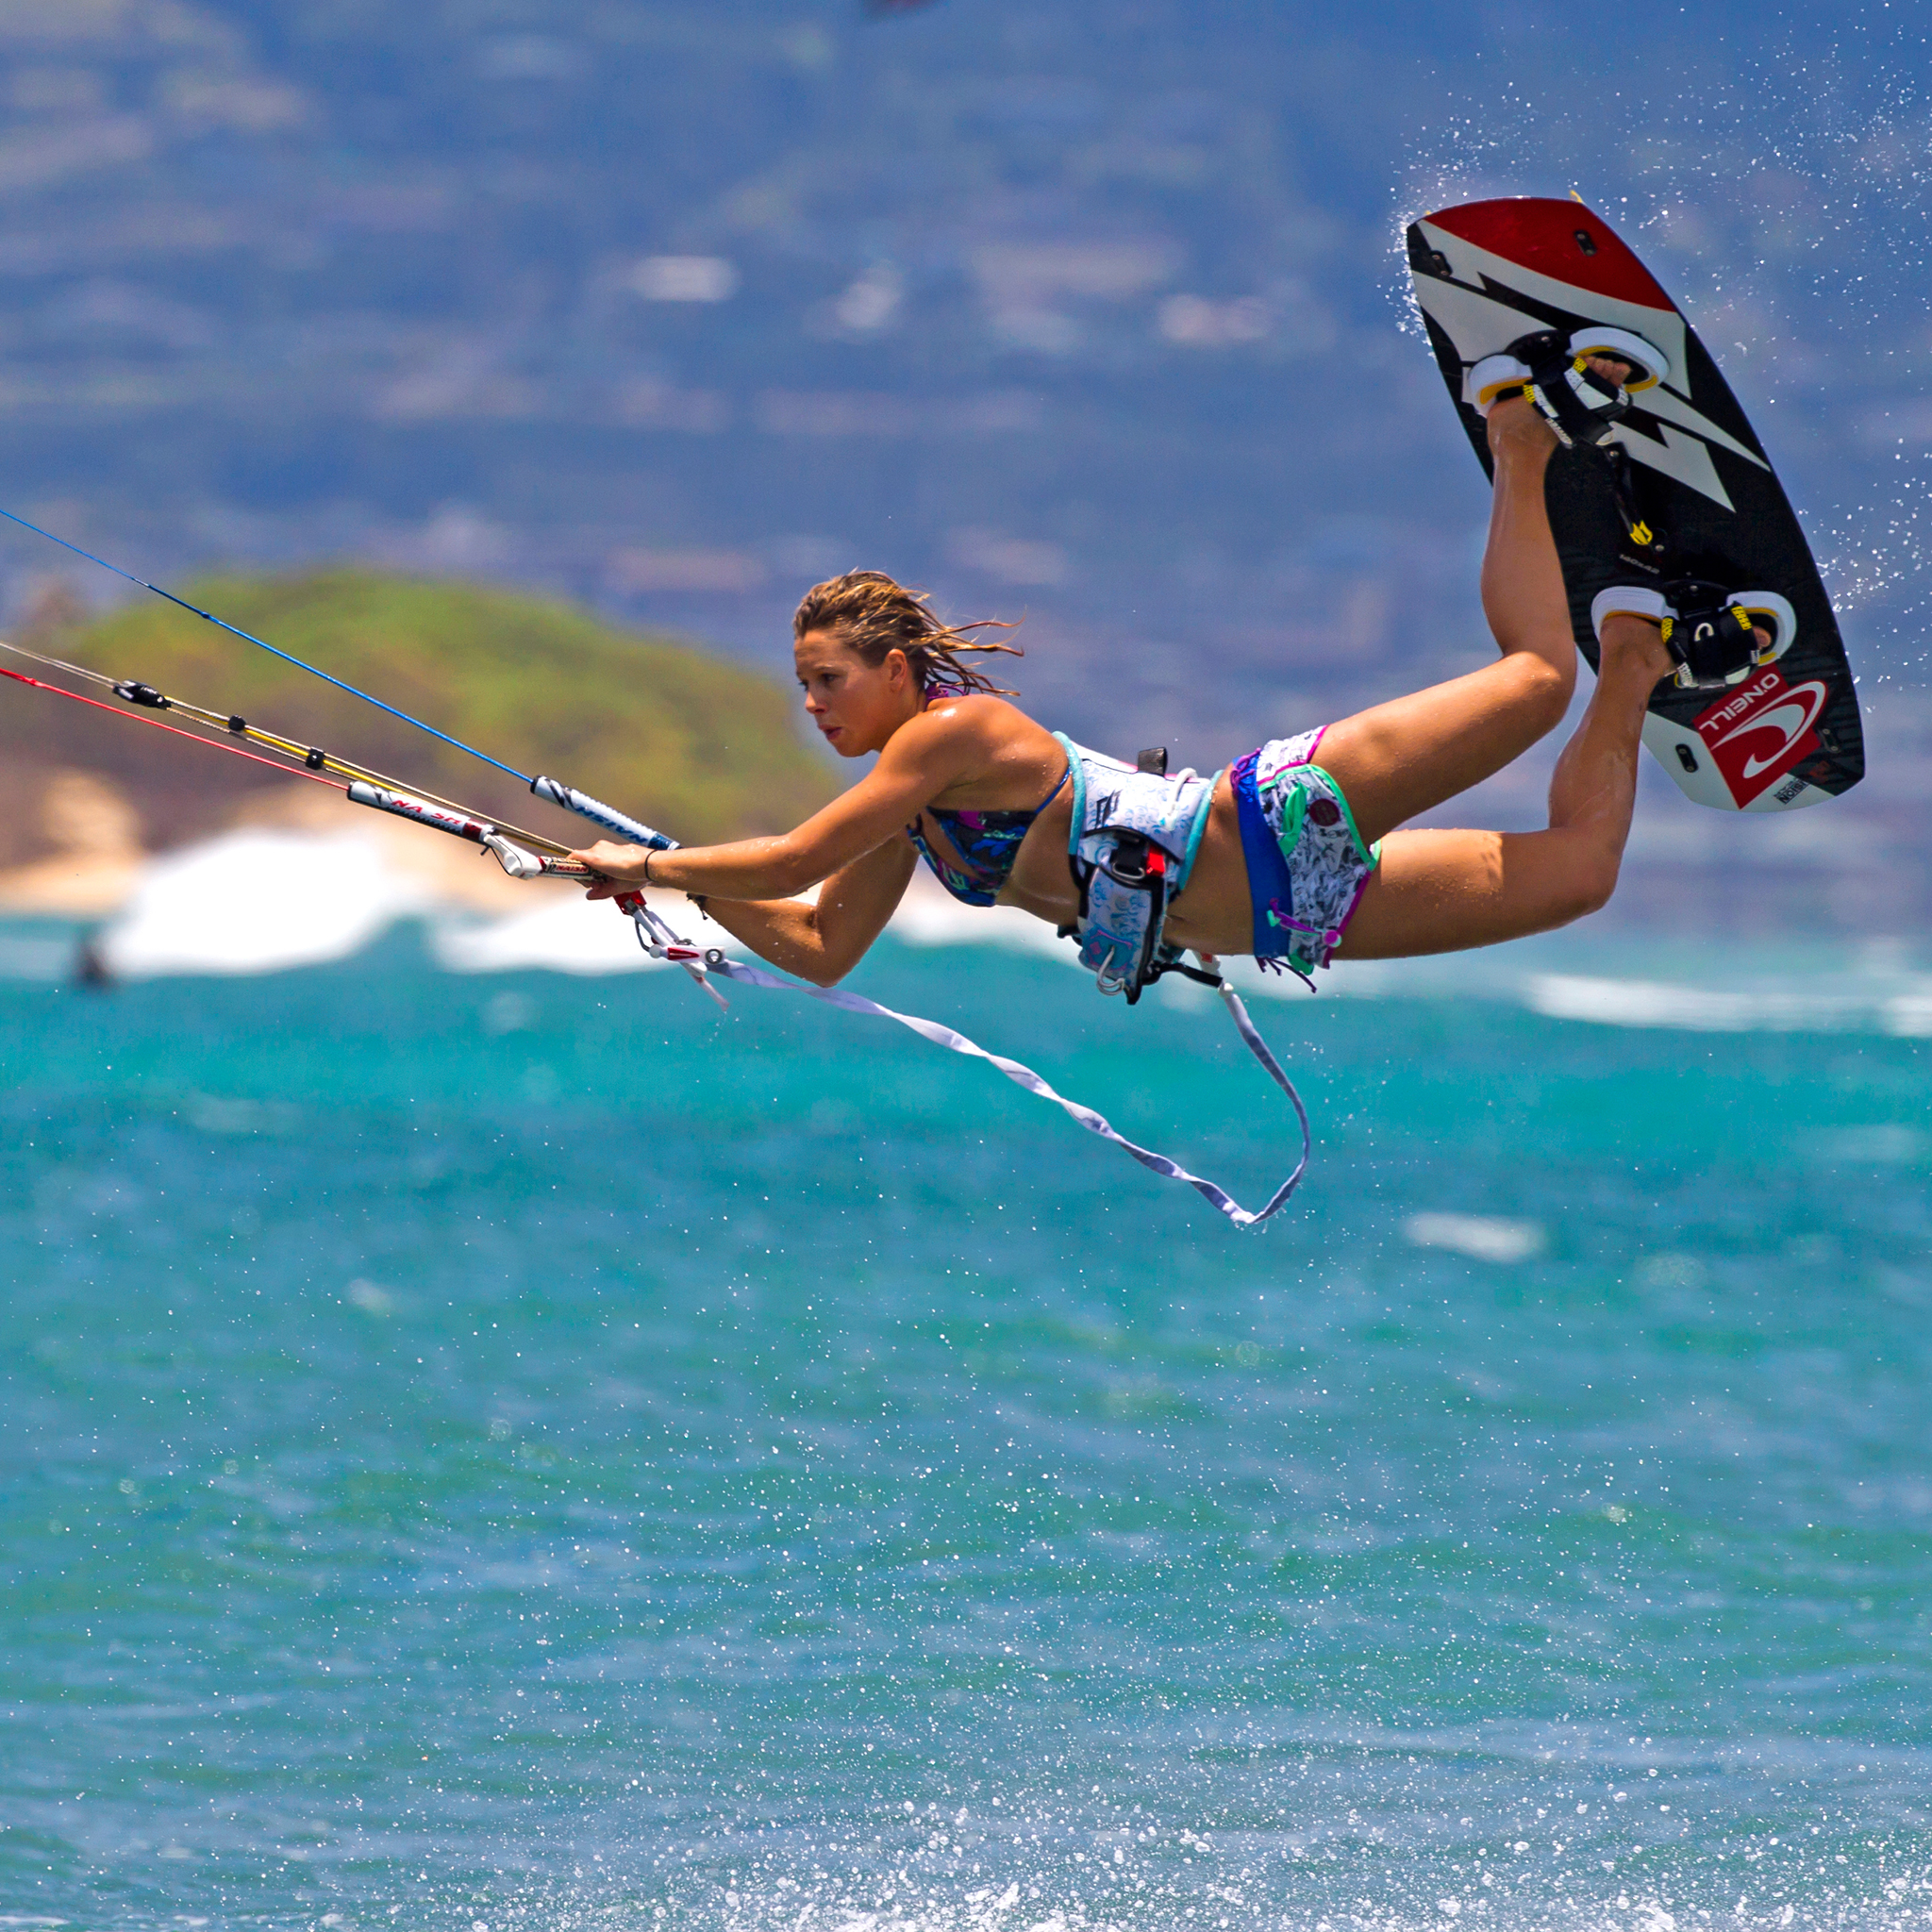 kitesurf wallpaper image - Jalou Langeree popping a raily - in resolution: iPad 2 & 3 2048 X 2048